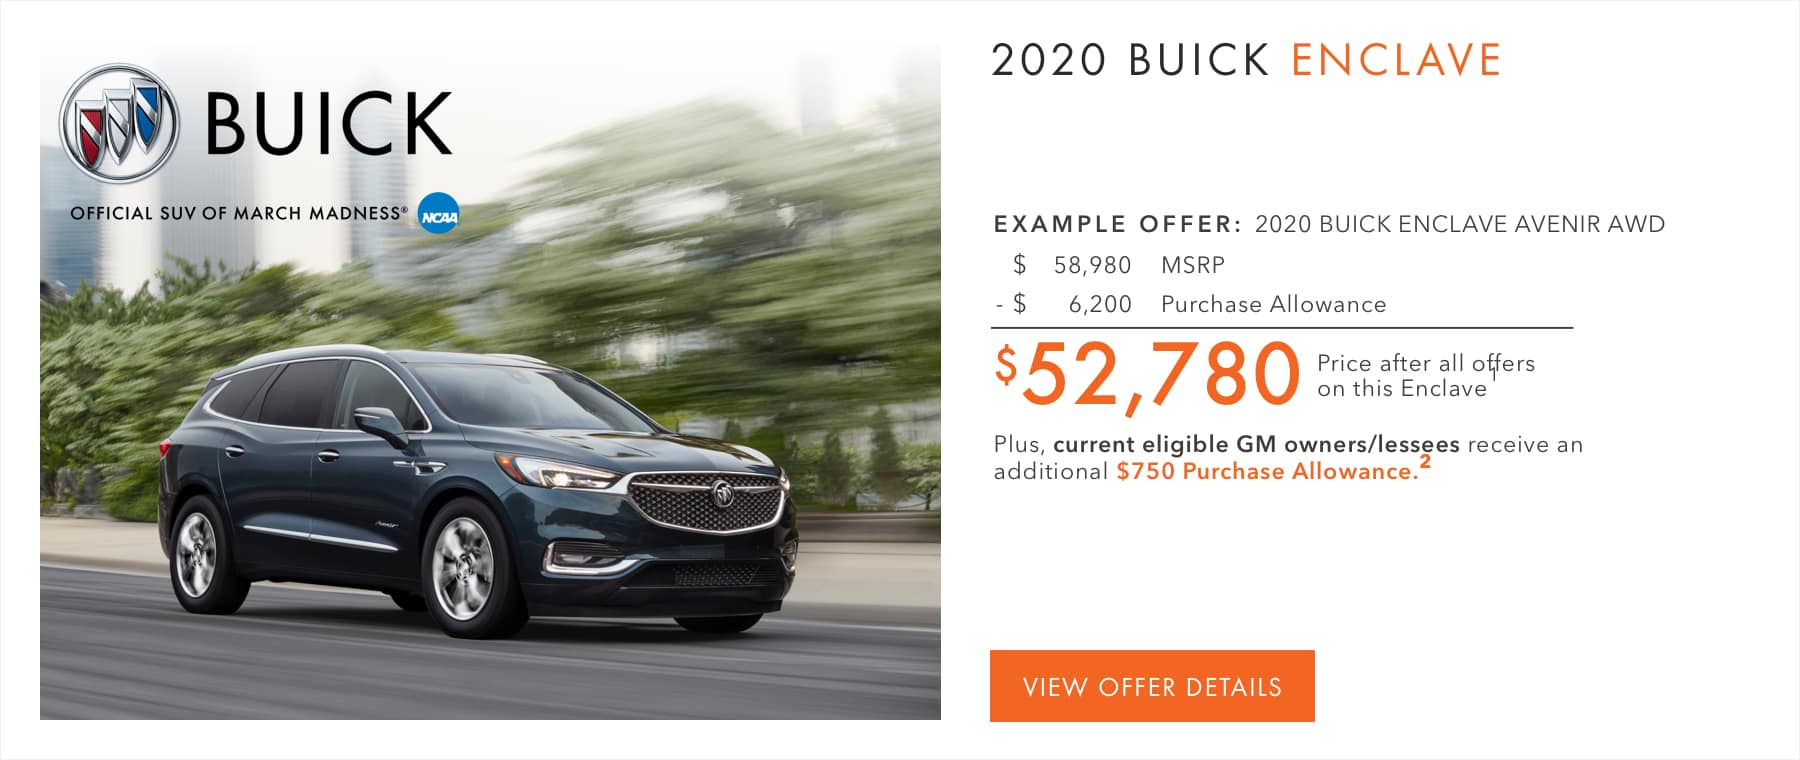 $6,200 Purchase Allowance.1 Plus, current eligible Buick or GMC owners/lessees receive an additional $750 Purchase Allowance.2